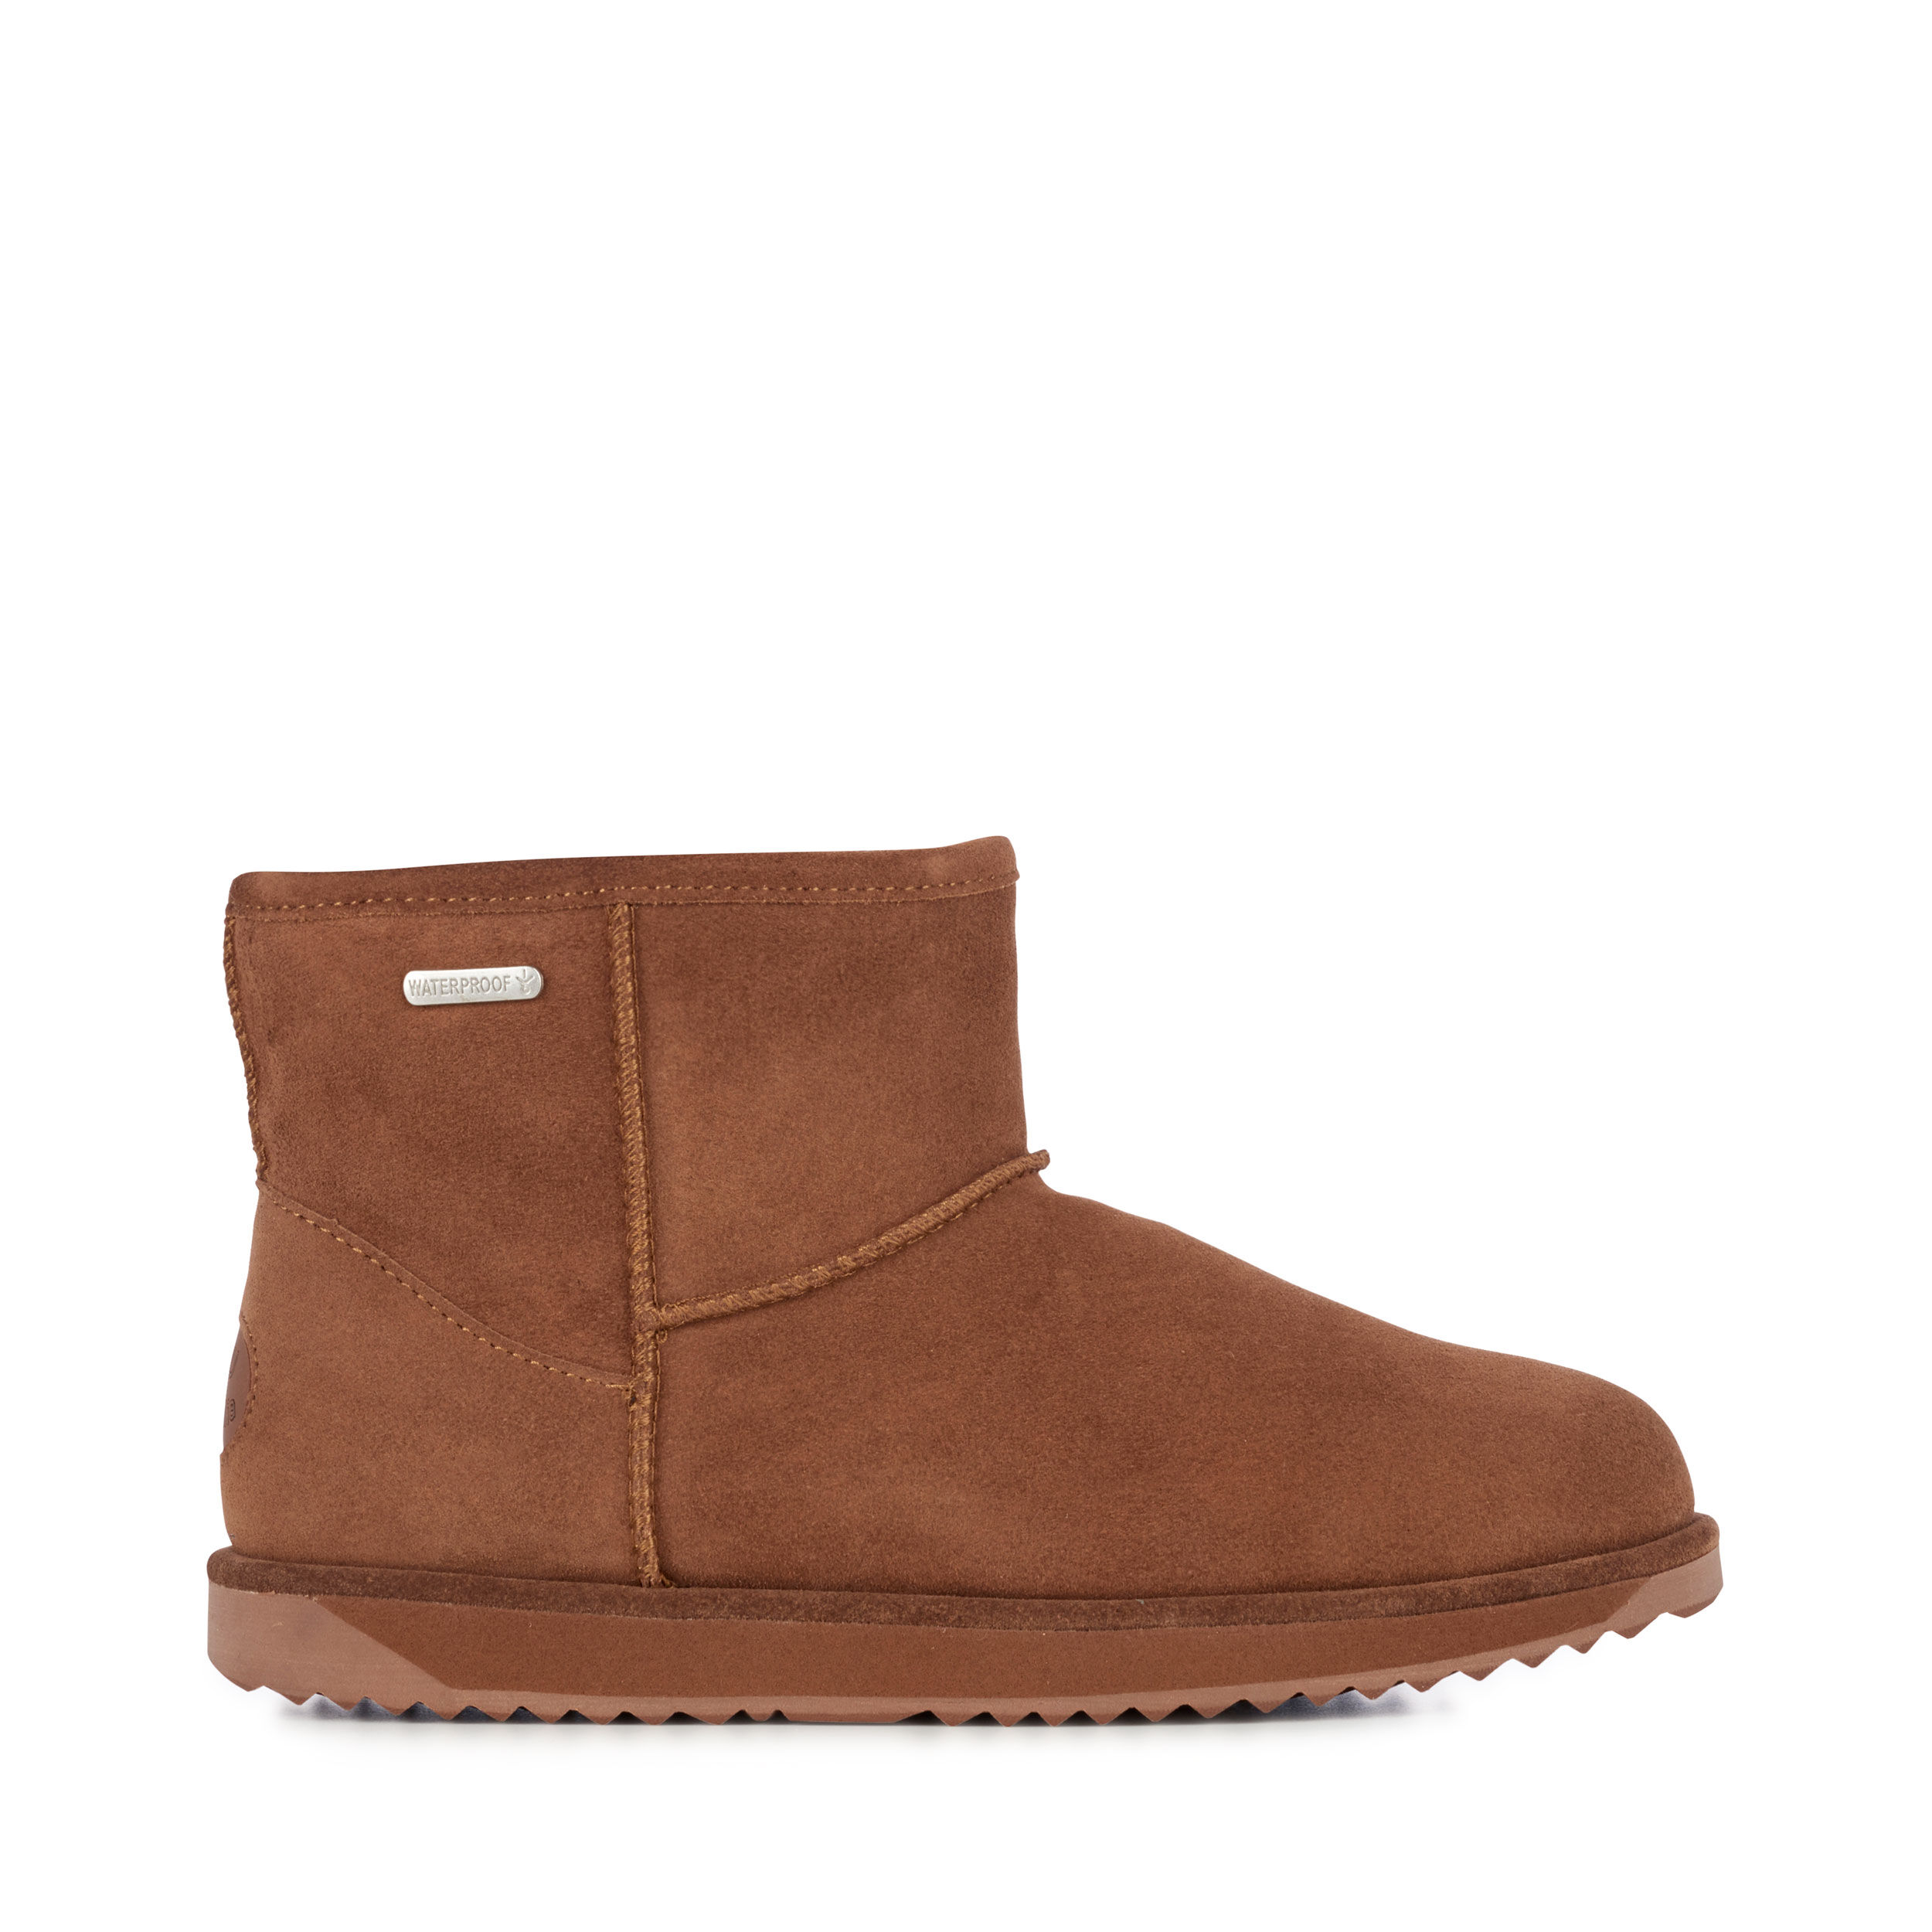 Emu Australia Women's Paterson Classic Mini Oak Snow Boots Factory Outlet Clearance Wiki Sale Sneakernews For Sale Online Looking For For Sale Bb9zB